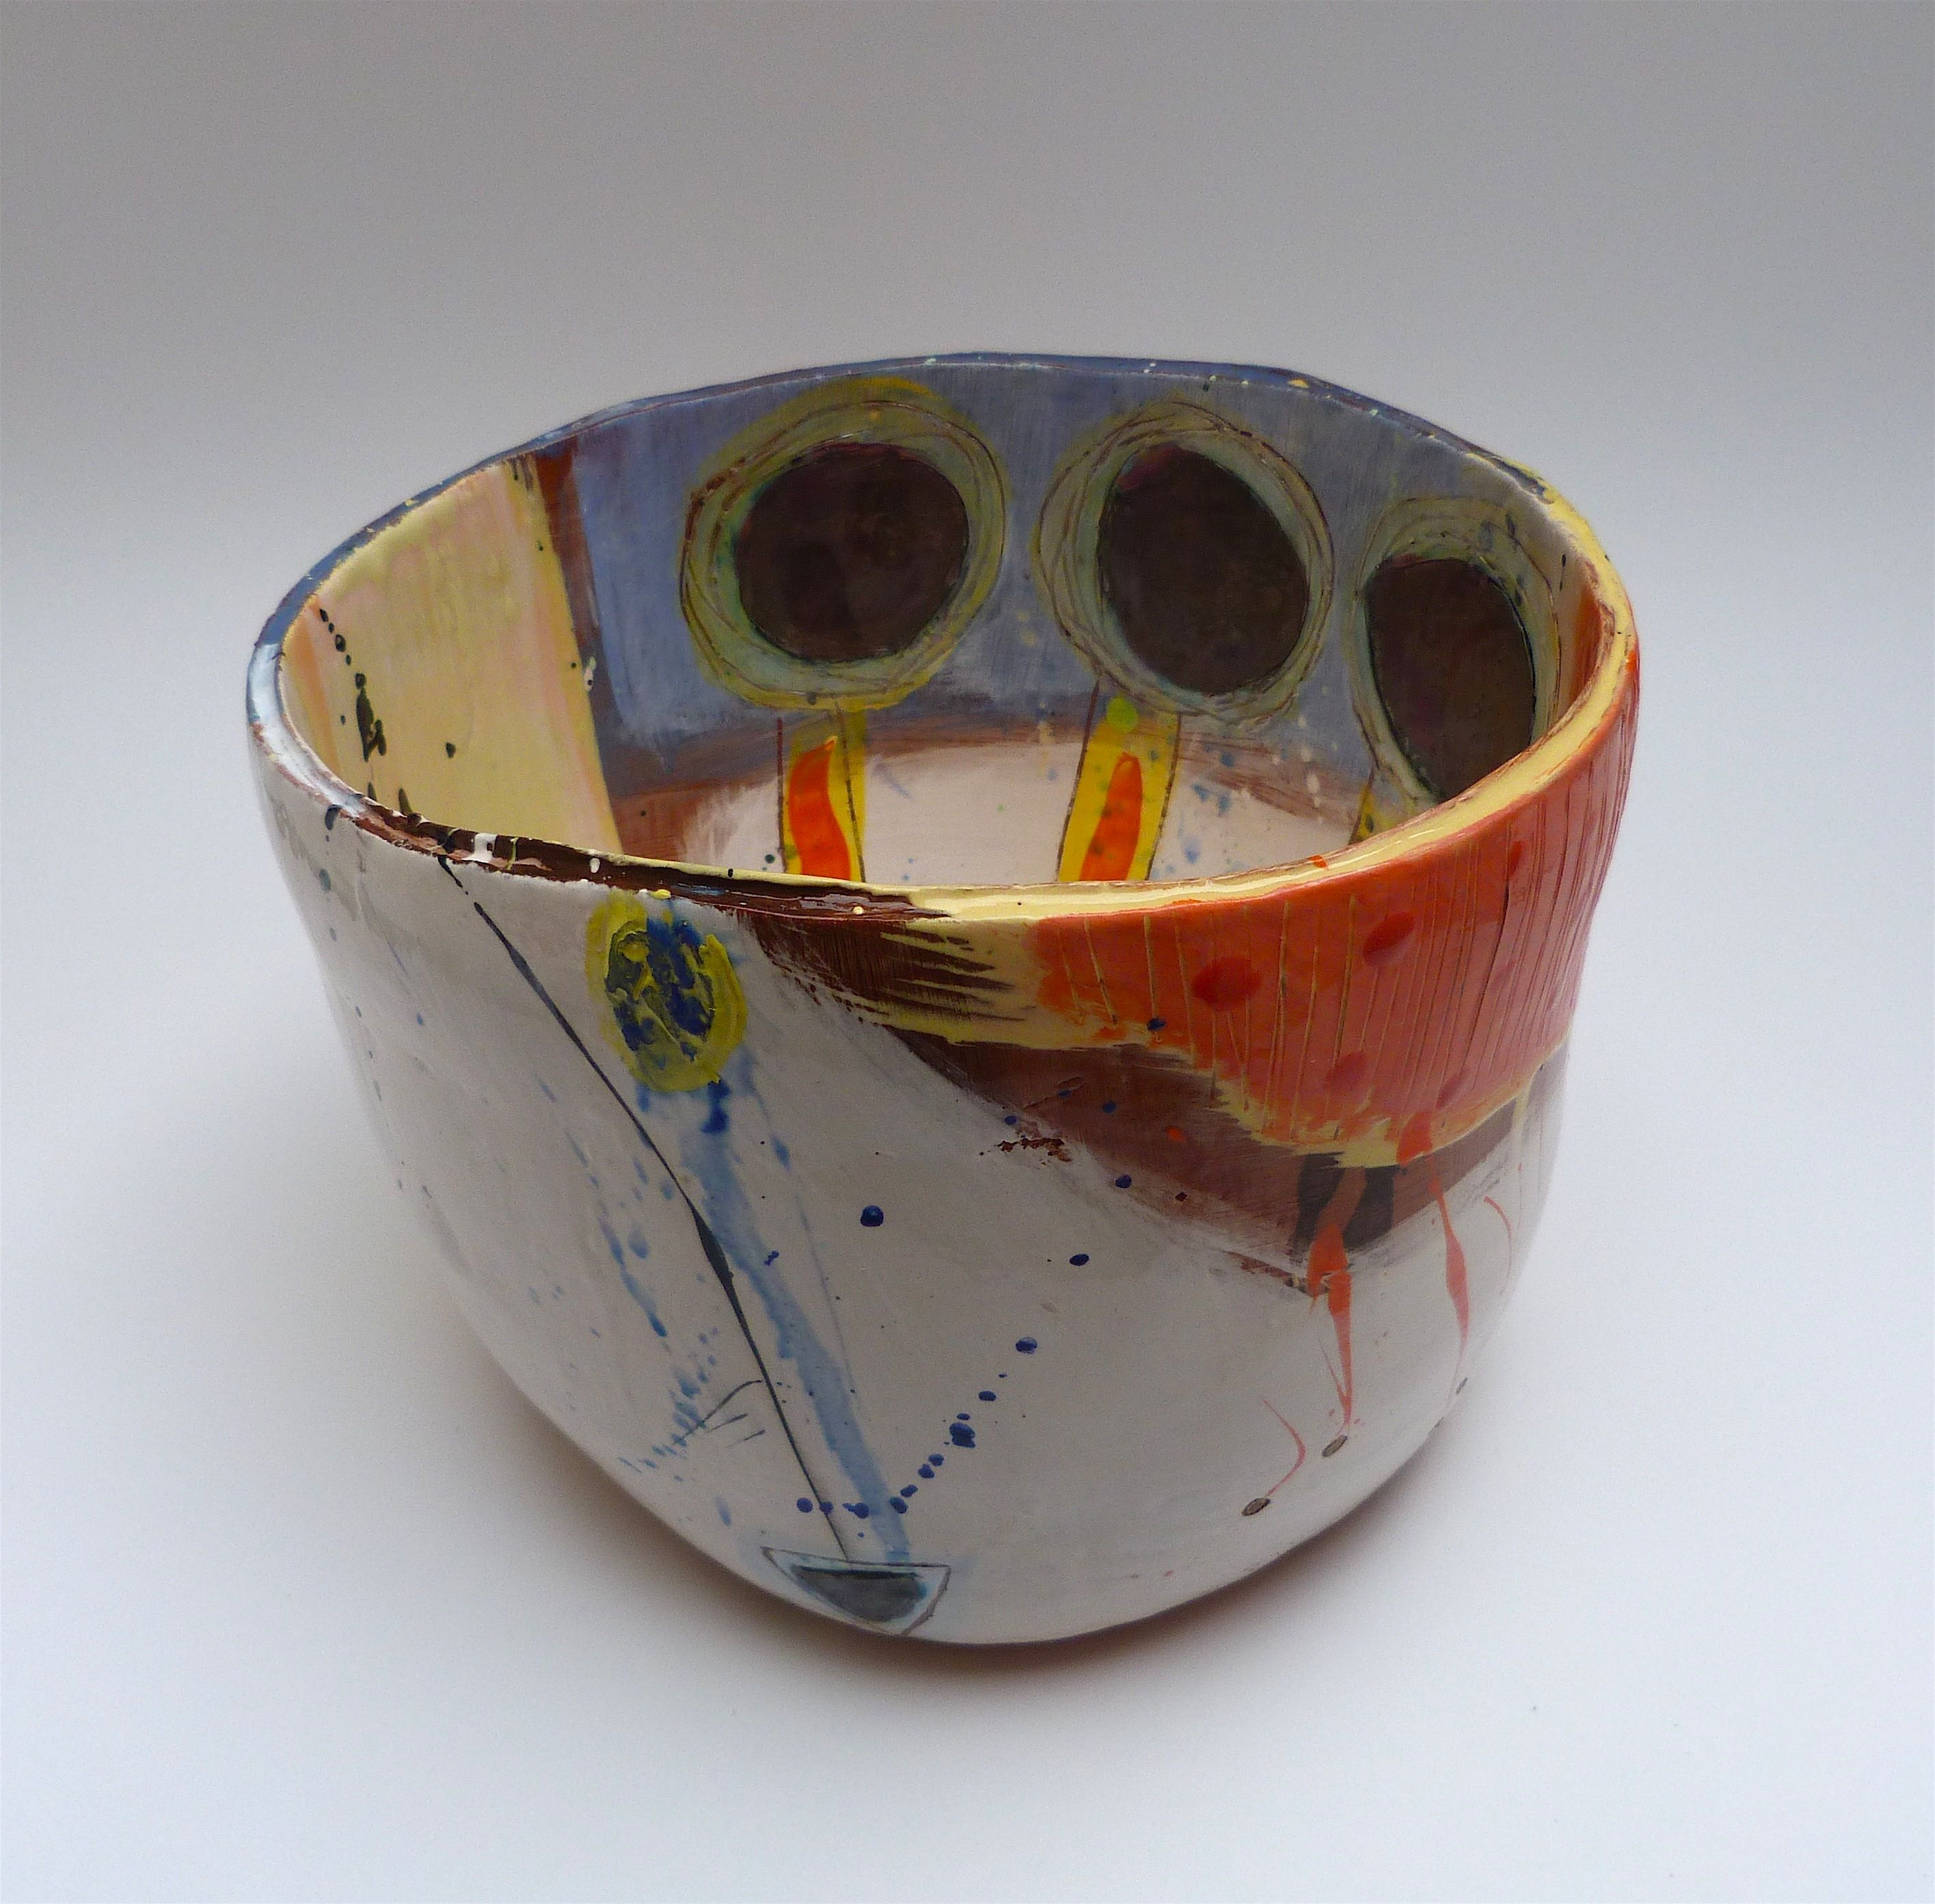 Pot with 3 interior saturated blue discs on orange/yellow stems to interior with salmon rim overlay 16cmsH x 21cmsW - back view